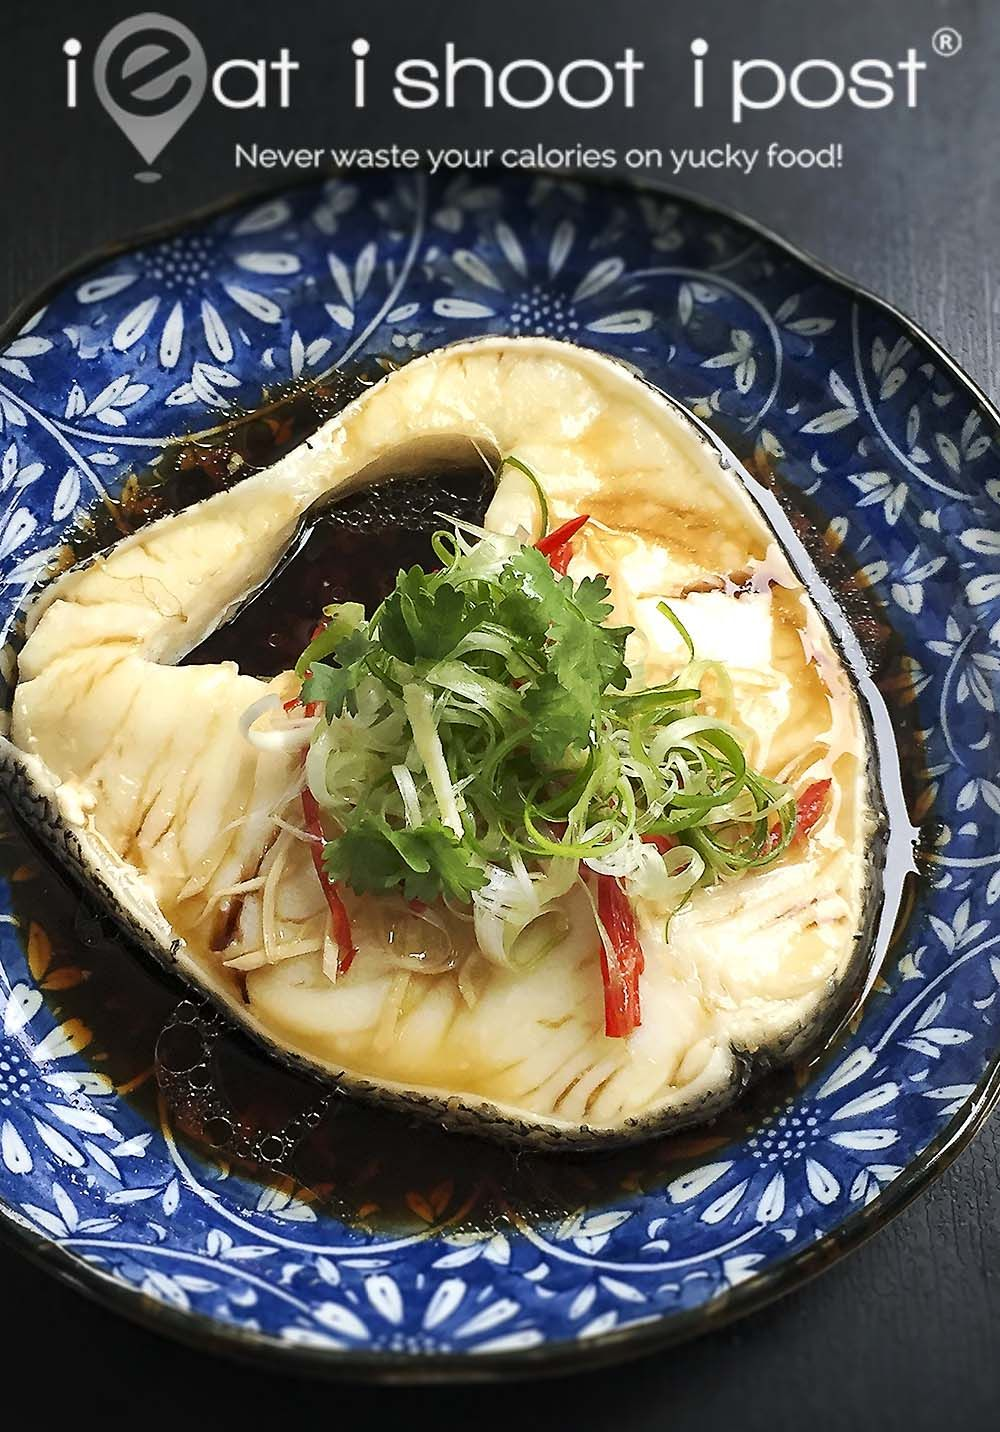 Cantonese Style Steamed Fish Recipe Ieatishootipost Steamed Fish Recipes Fish Recipes Steamed Fish